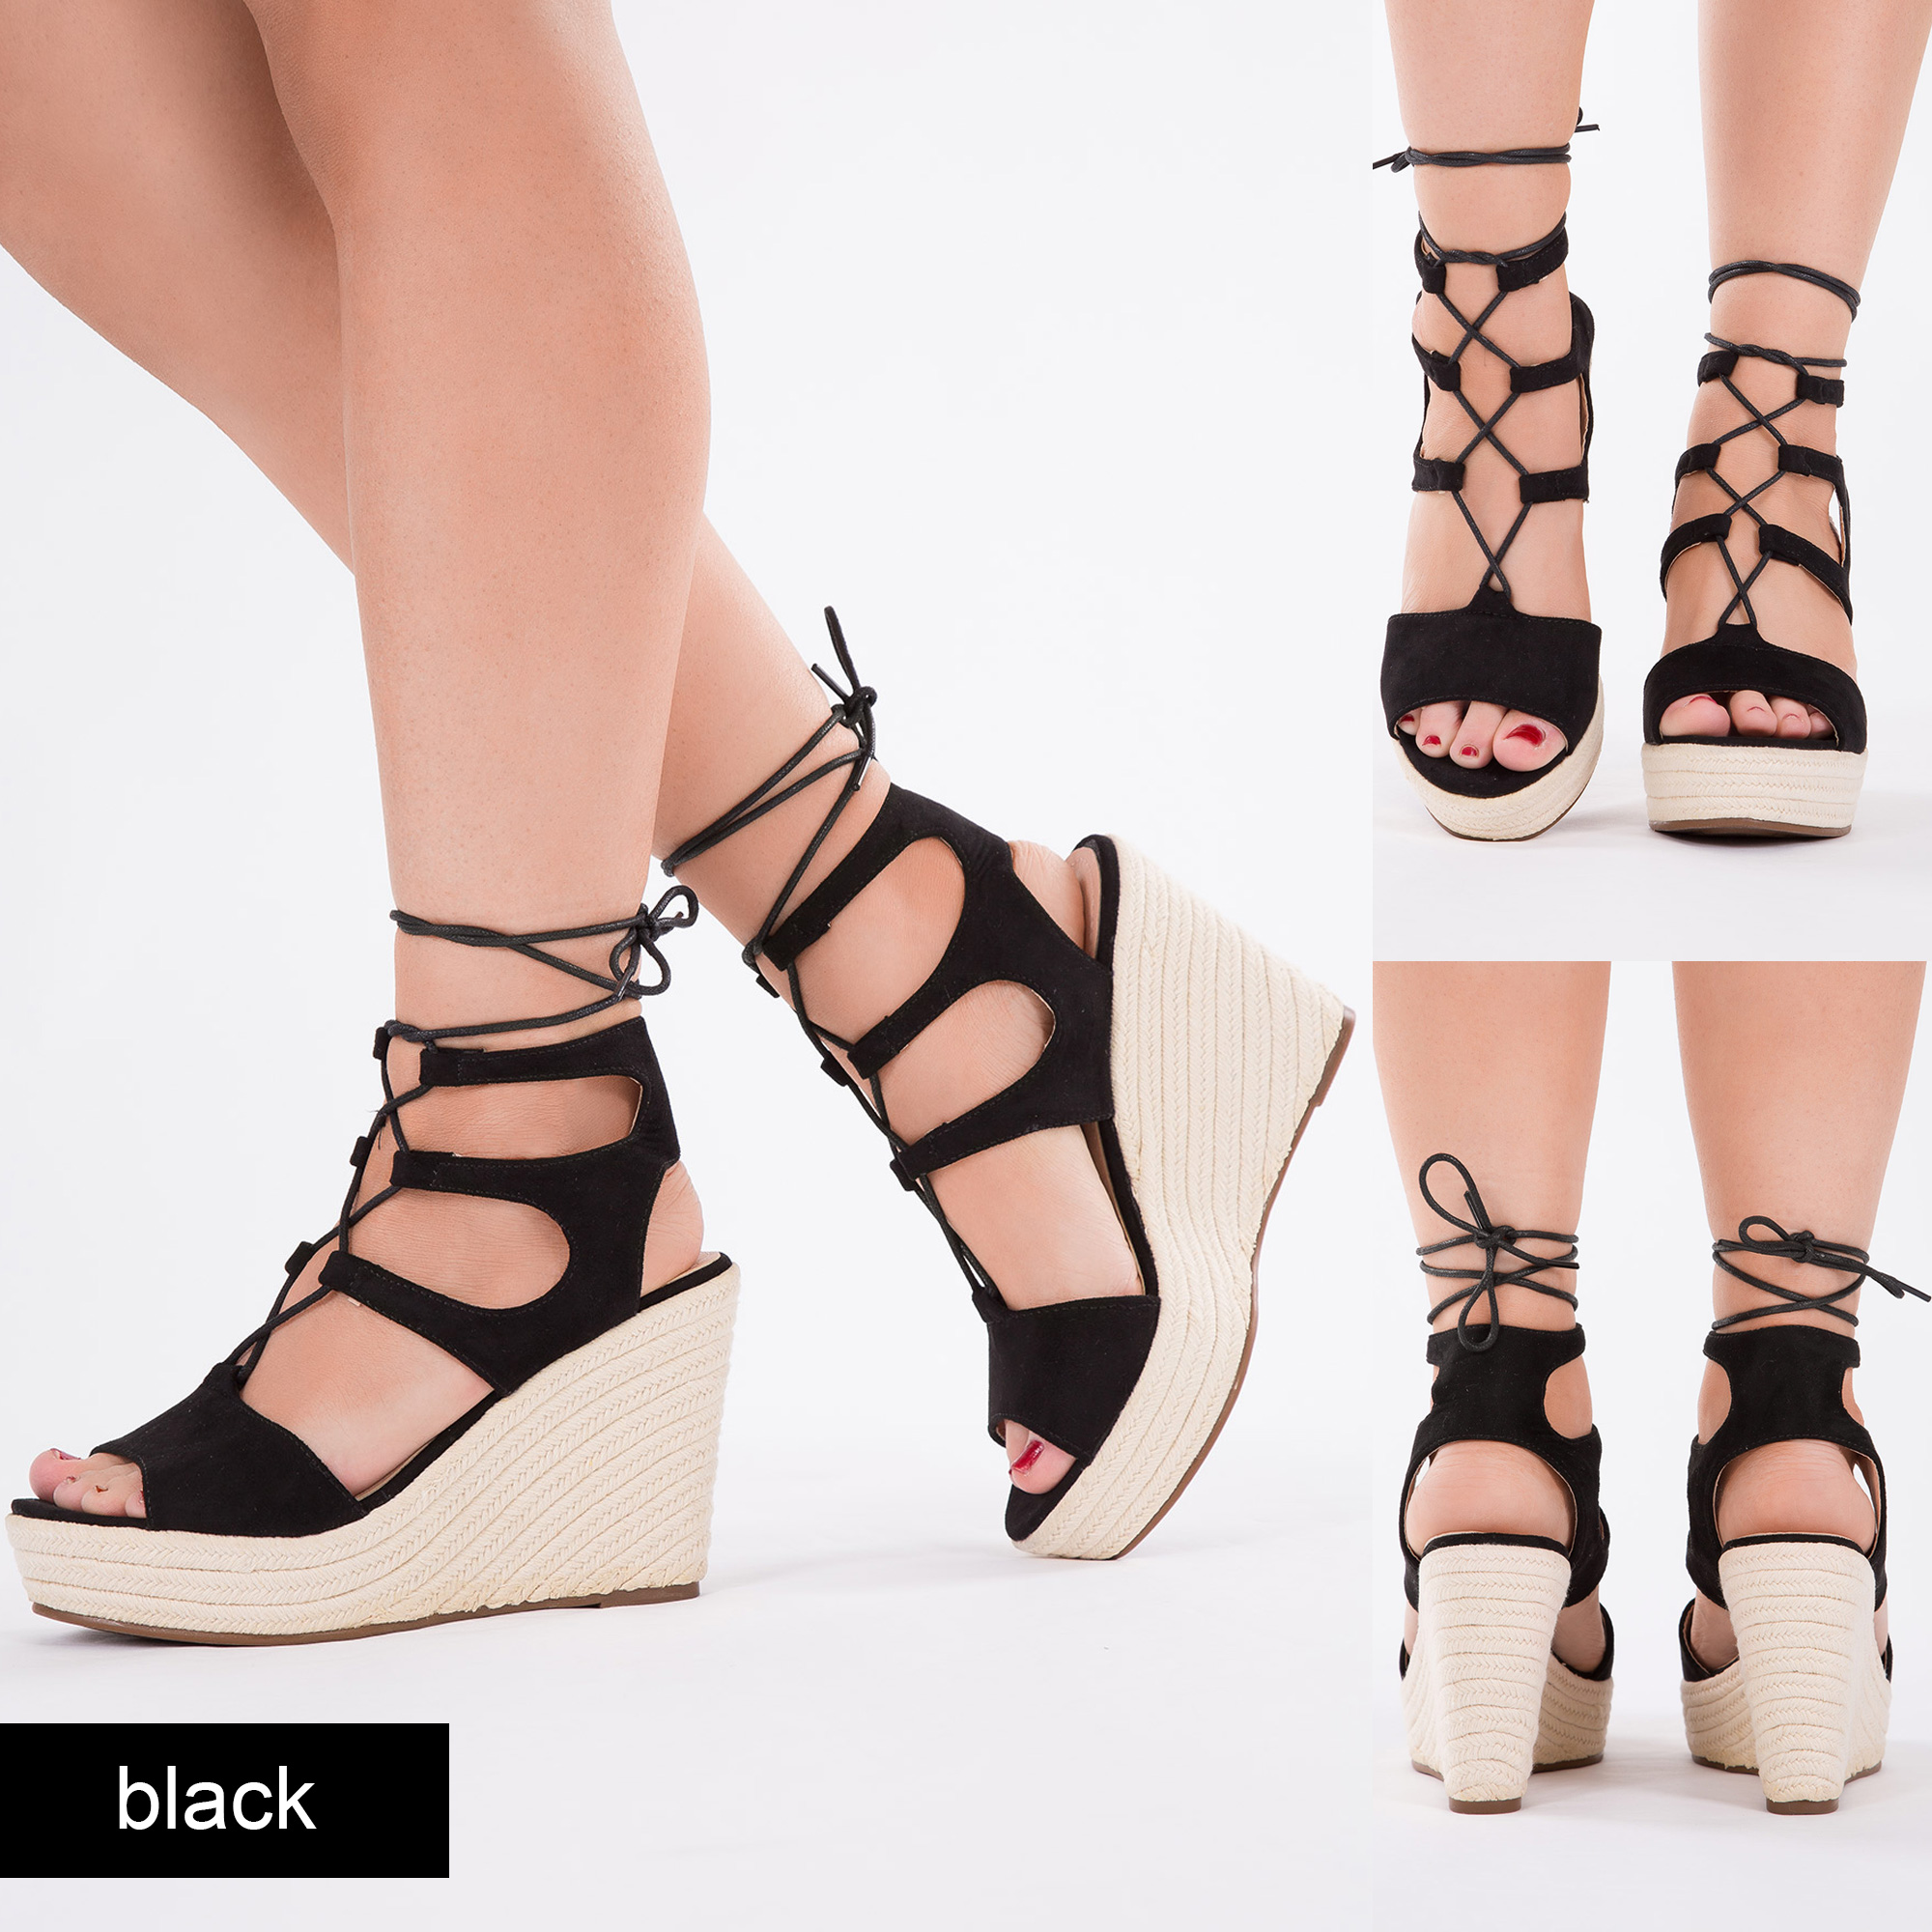 Womens High Wedge Heel Platform Sandals Strappy Ankle Strap Lace ...